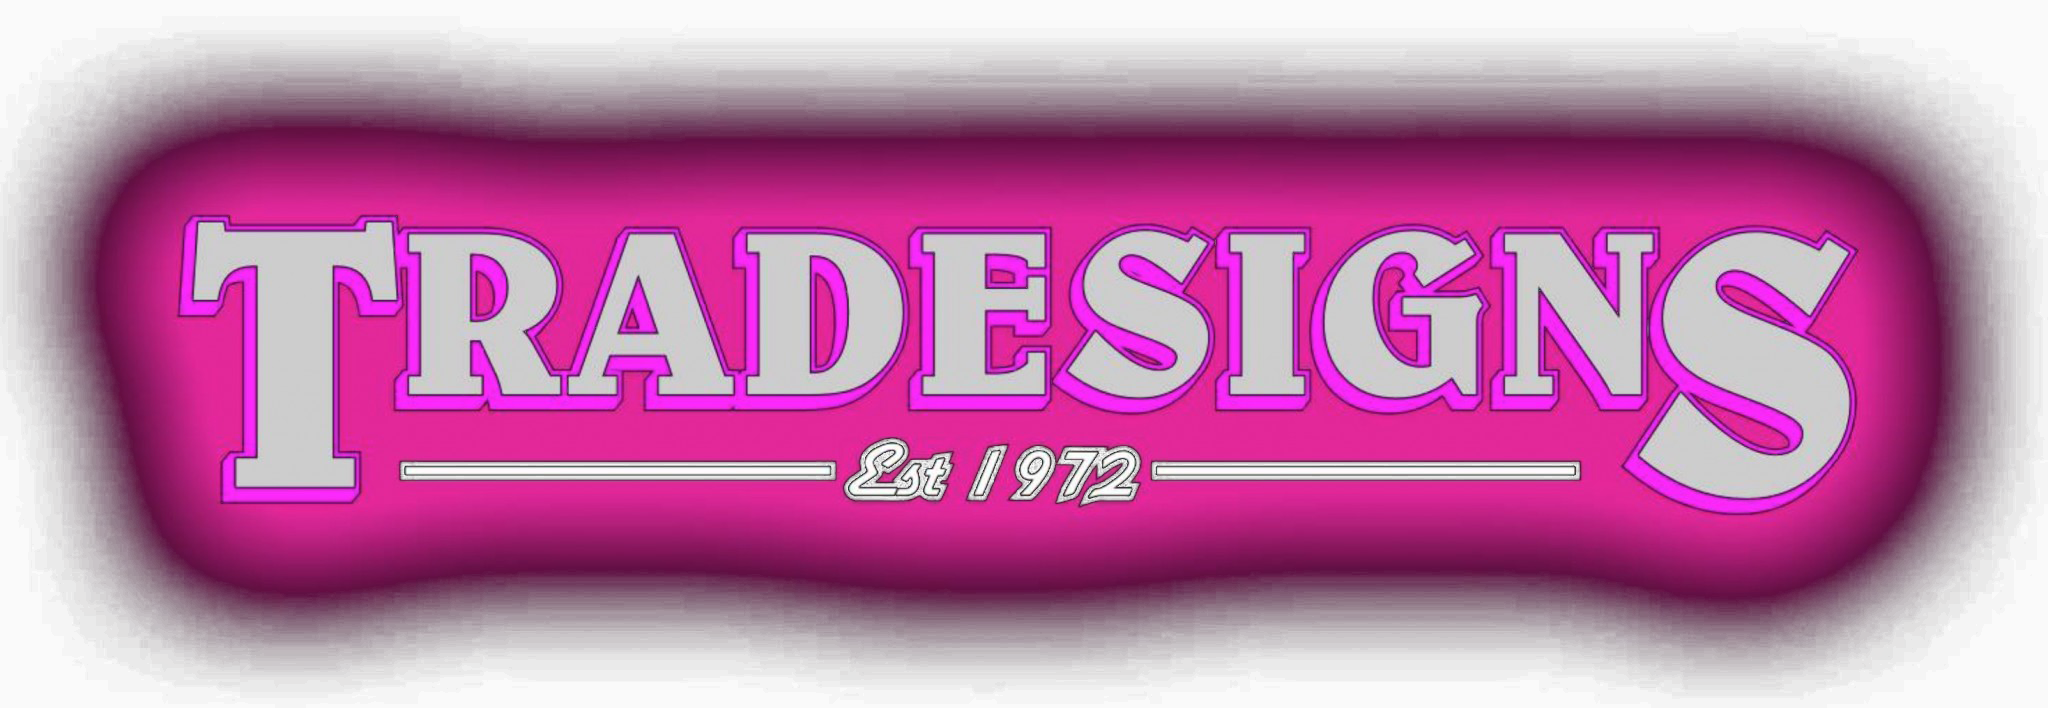 Tradesigns Limited Logo